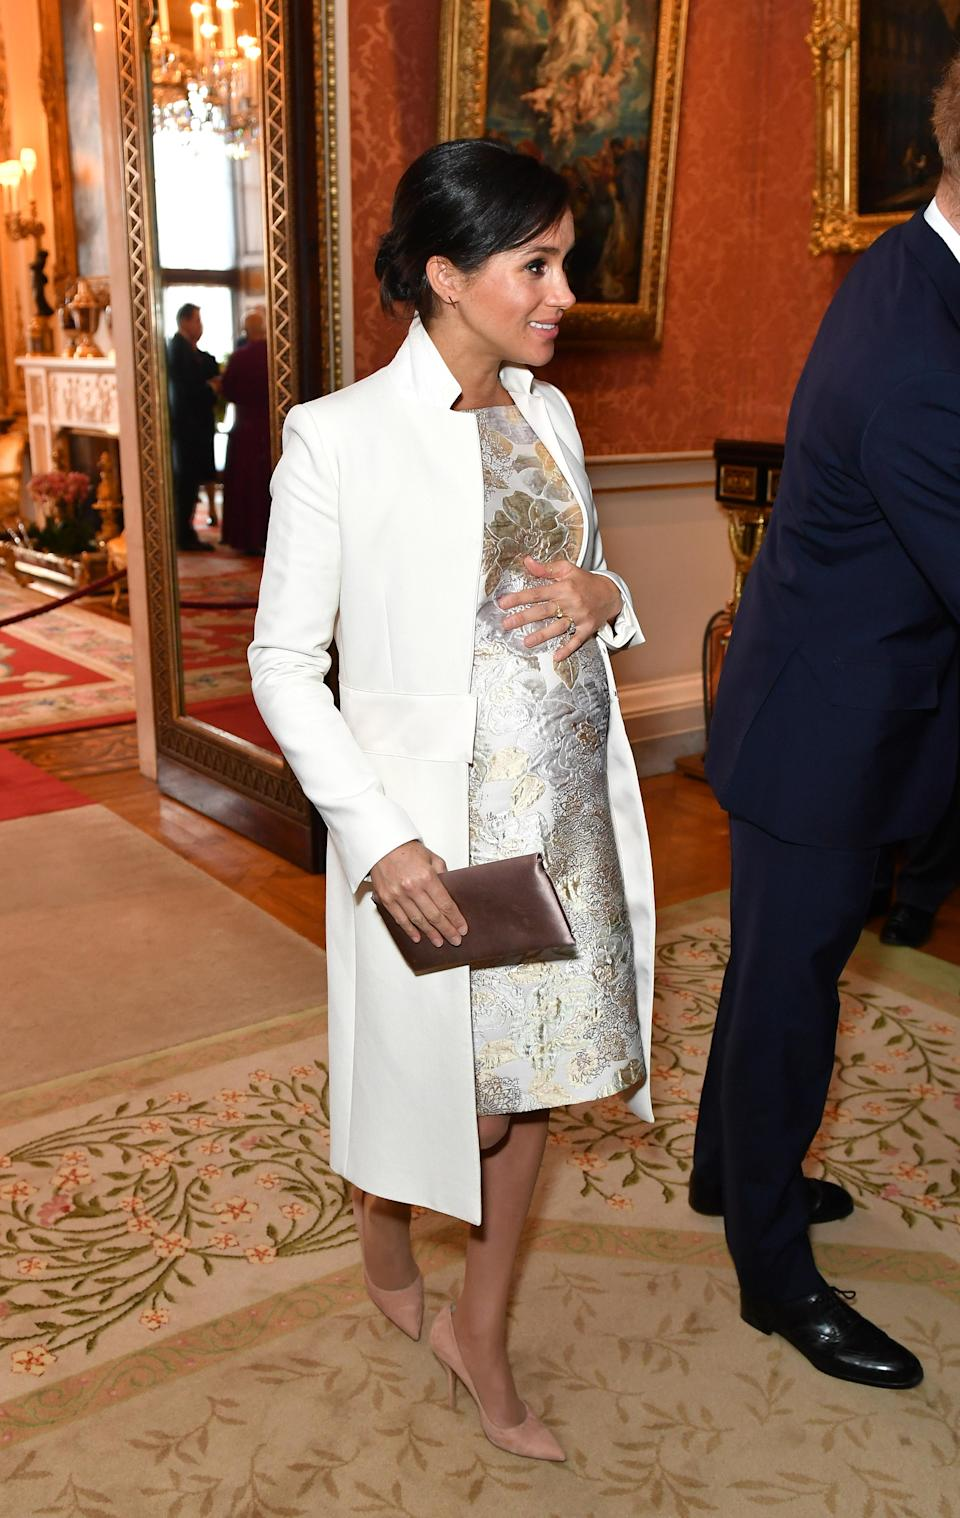 Meghan Markle wore an embroidered dress for the occasion. (Photo: Getty Images)